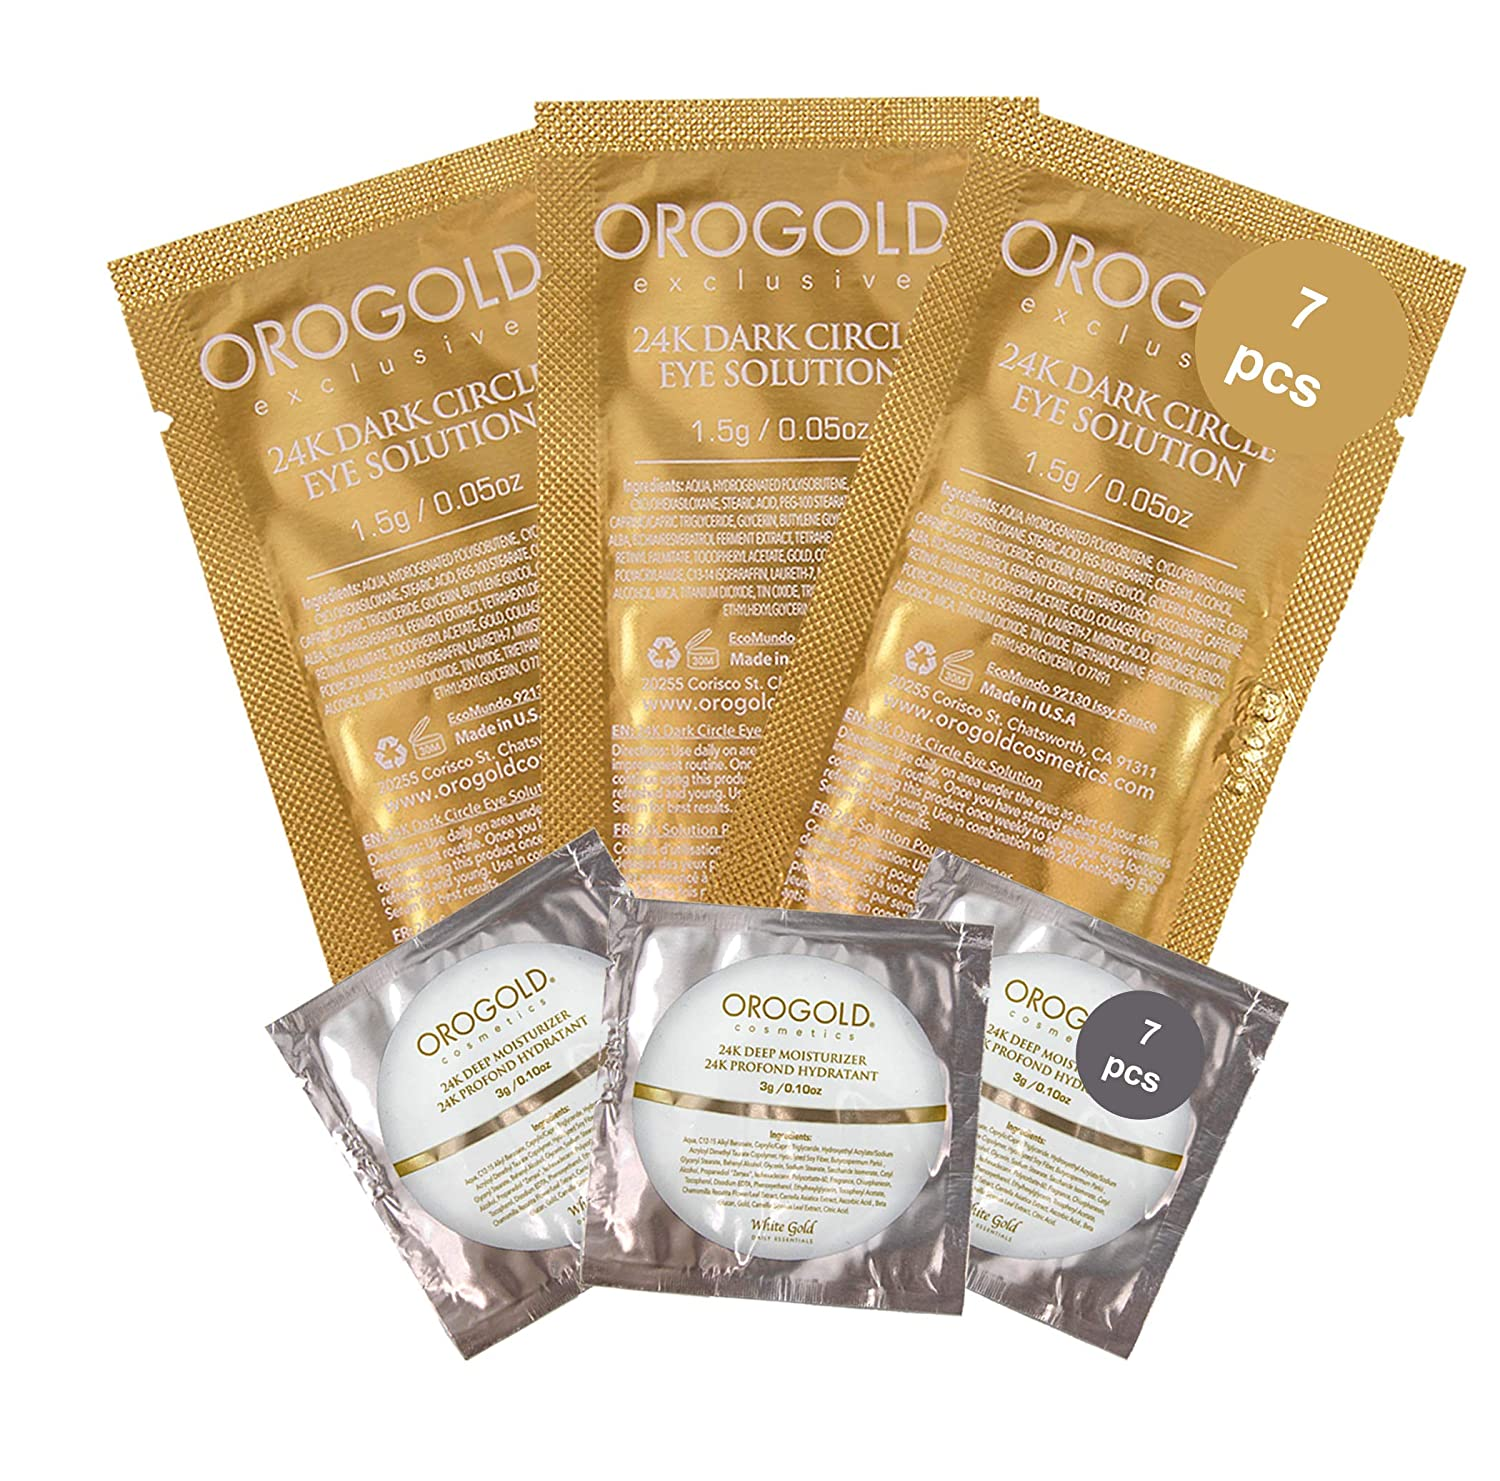 OROGOLD 24K Skin Care Samples - Travel With Fulfilment - Powerhouse Skin Care Travel Kit - Luxury Skin Care Trial Set At A Steal